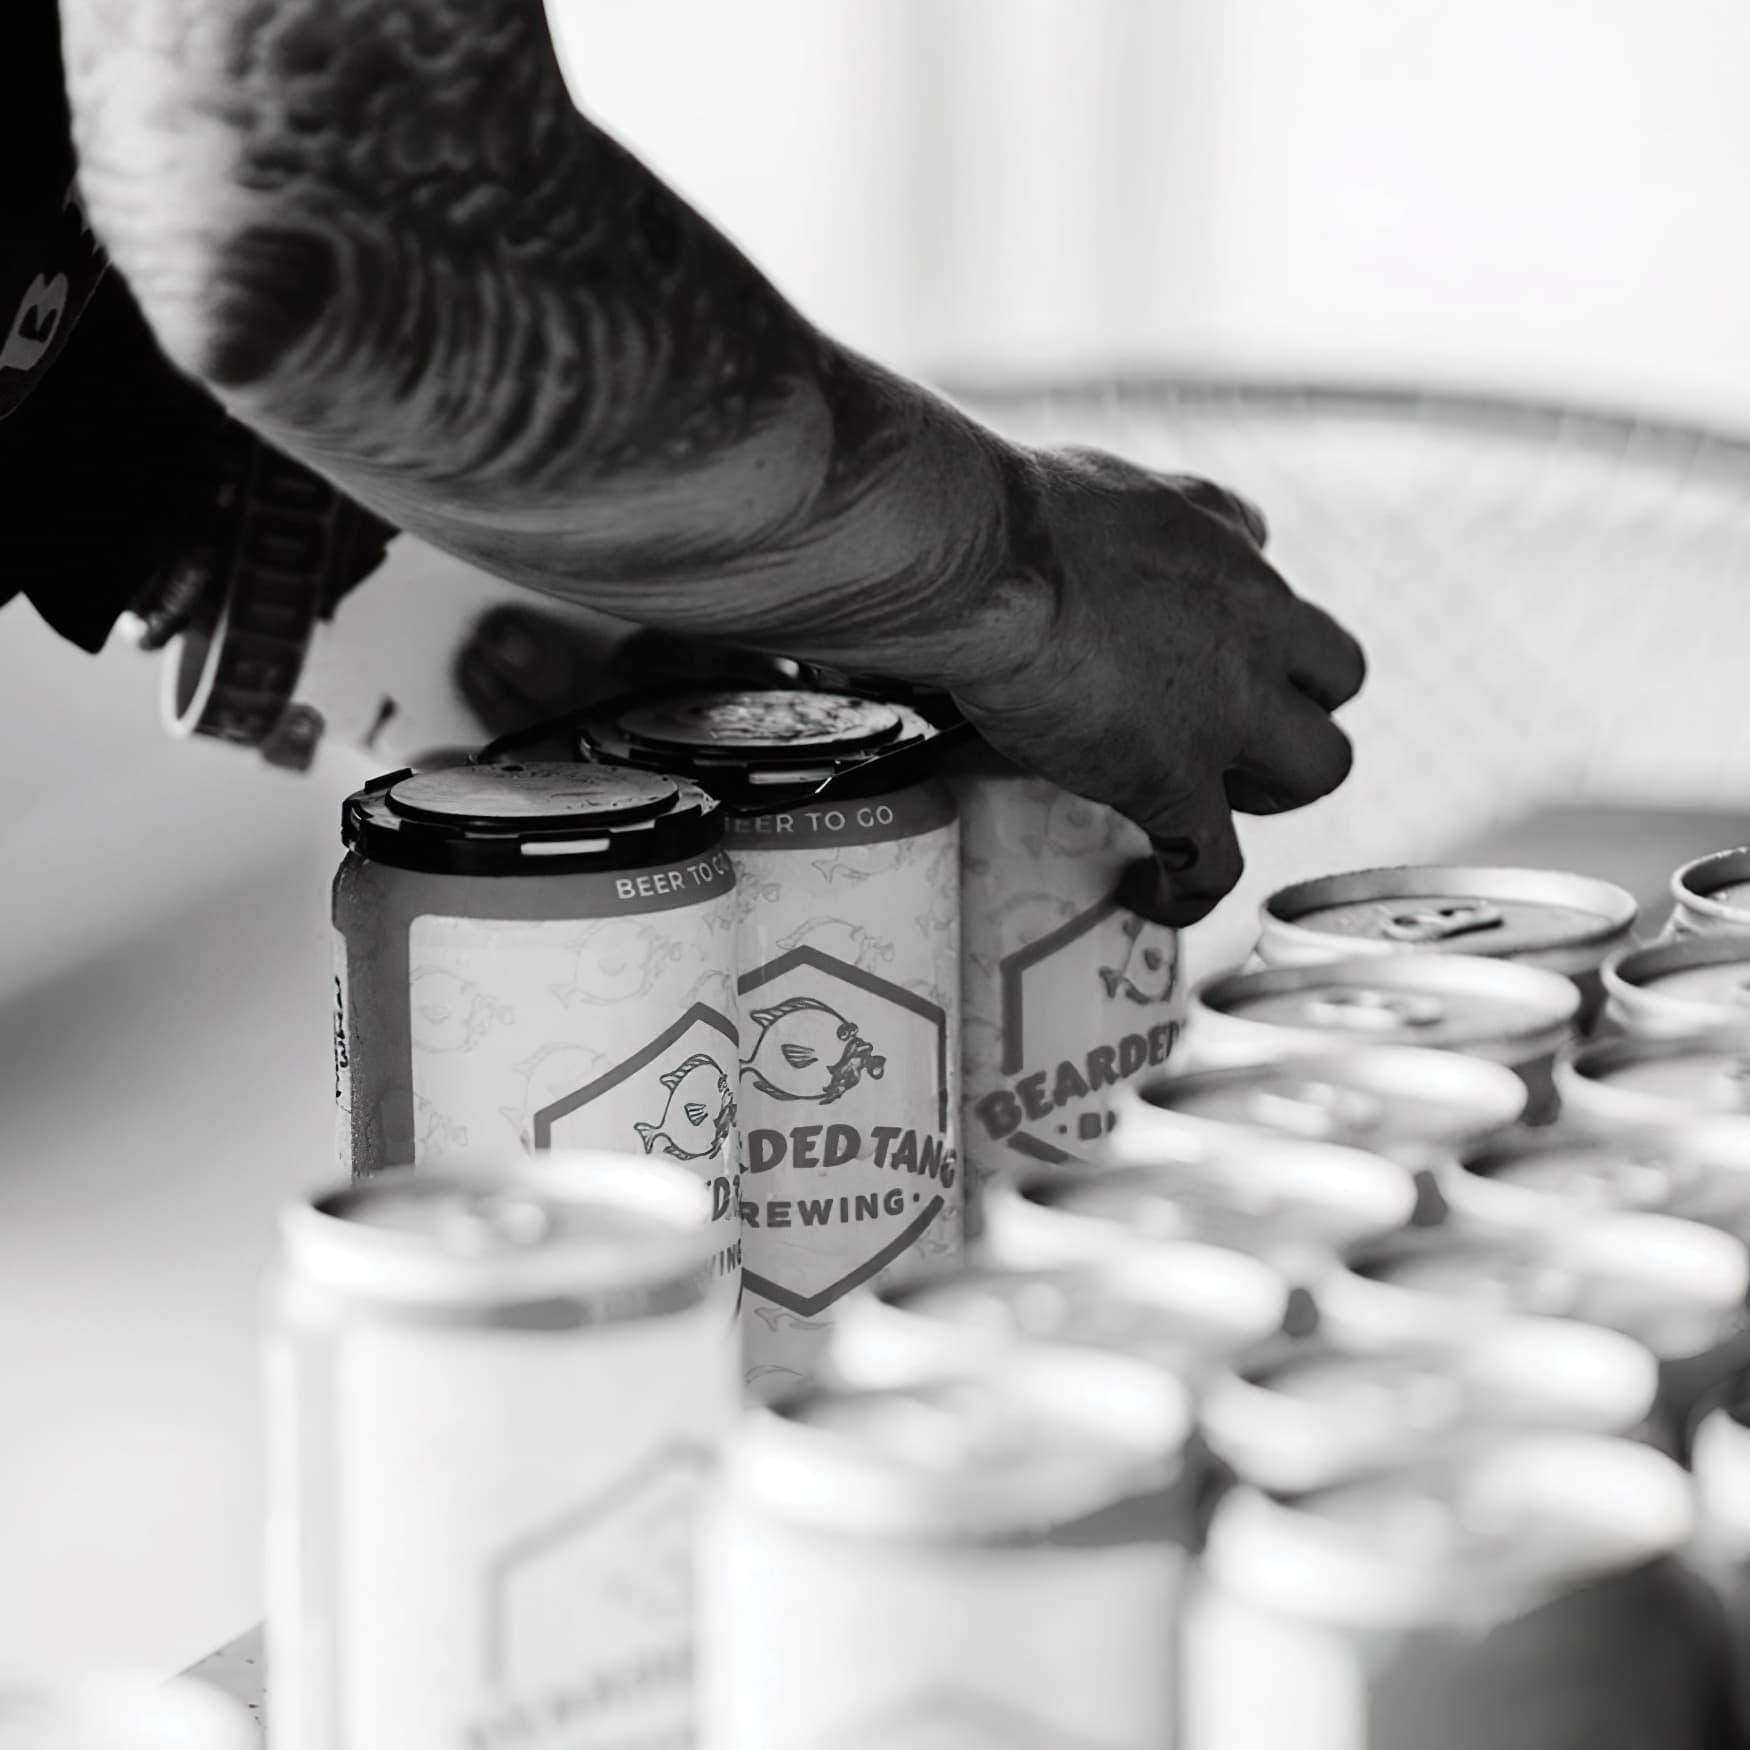 Person putting down a case of beer cans with custom designed label wraps.